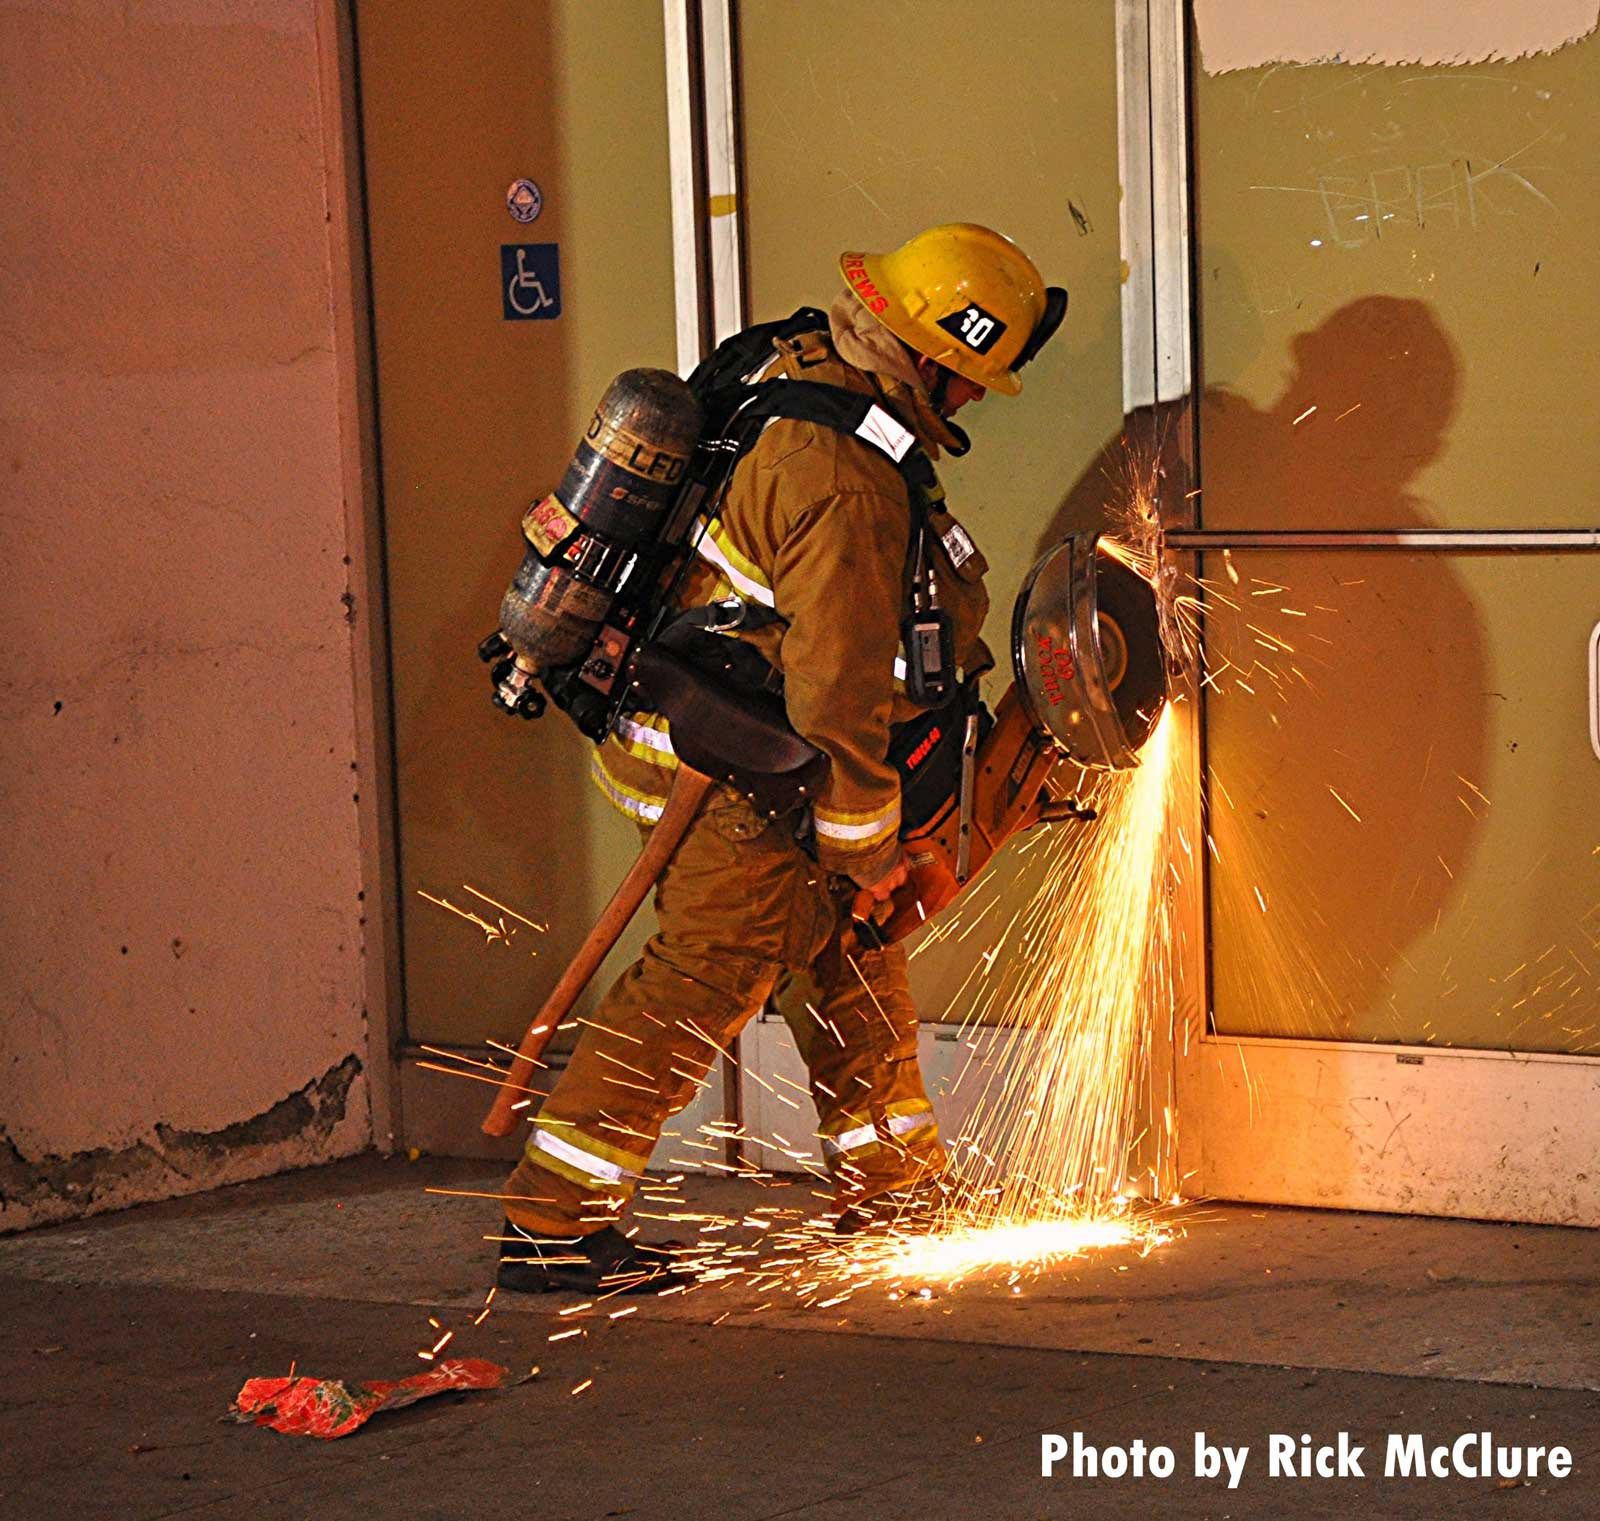 Firefighter cutting through a door